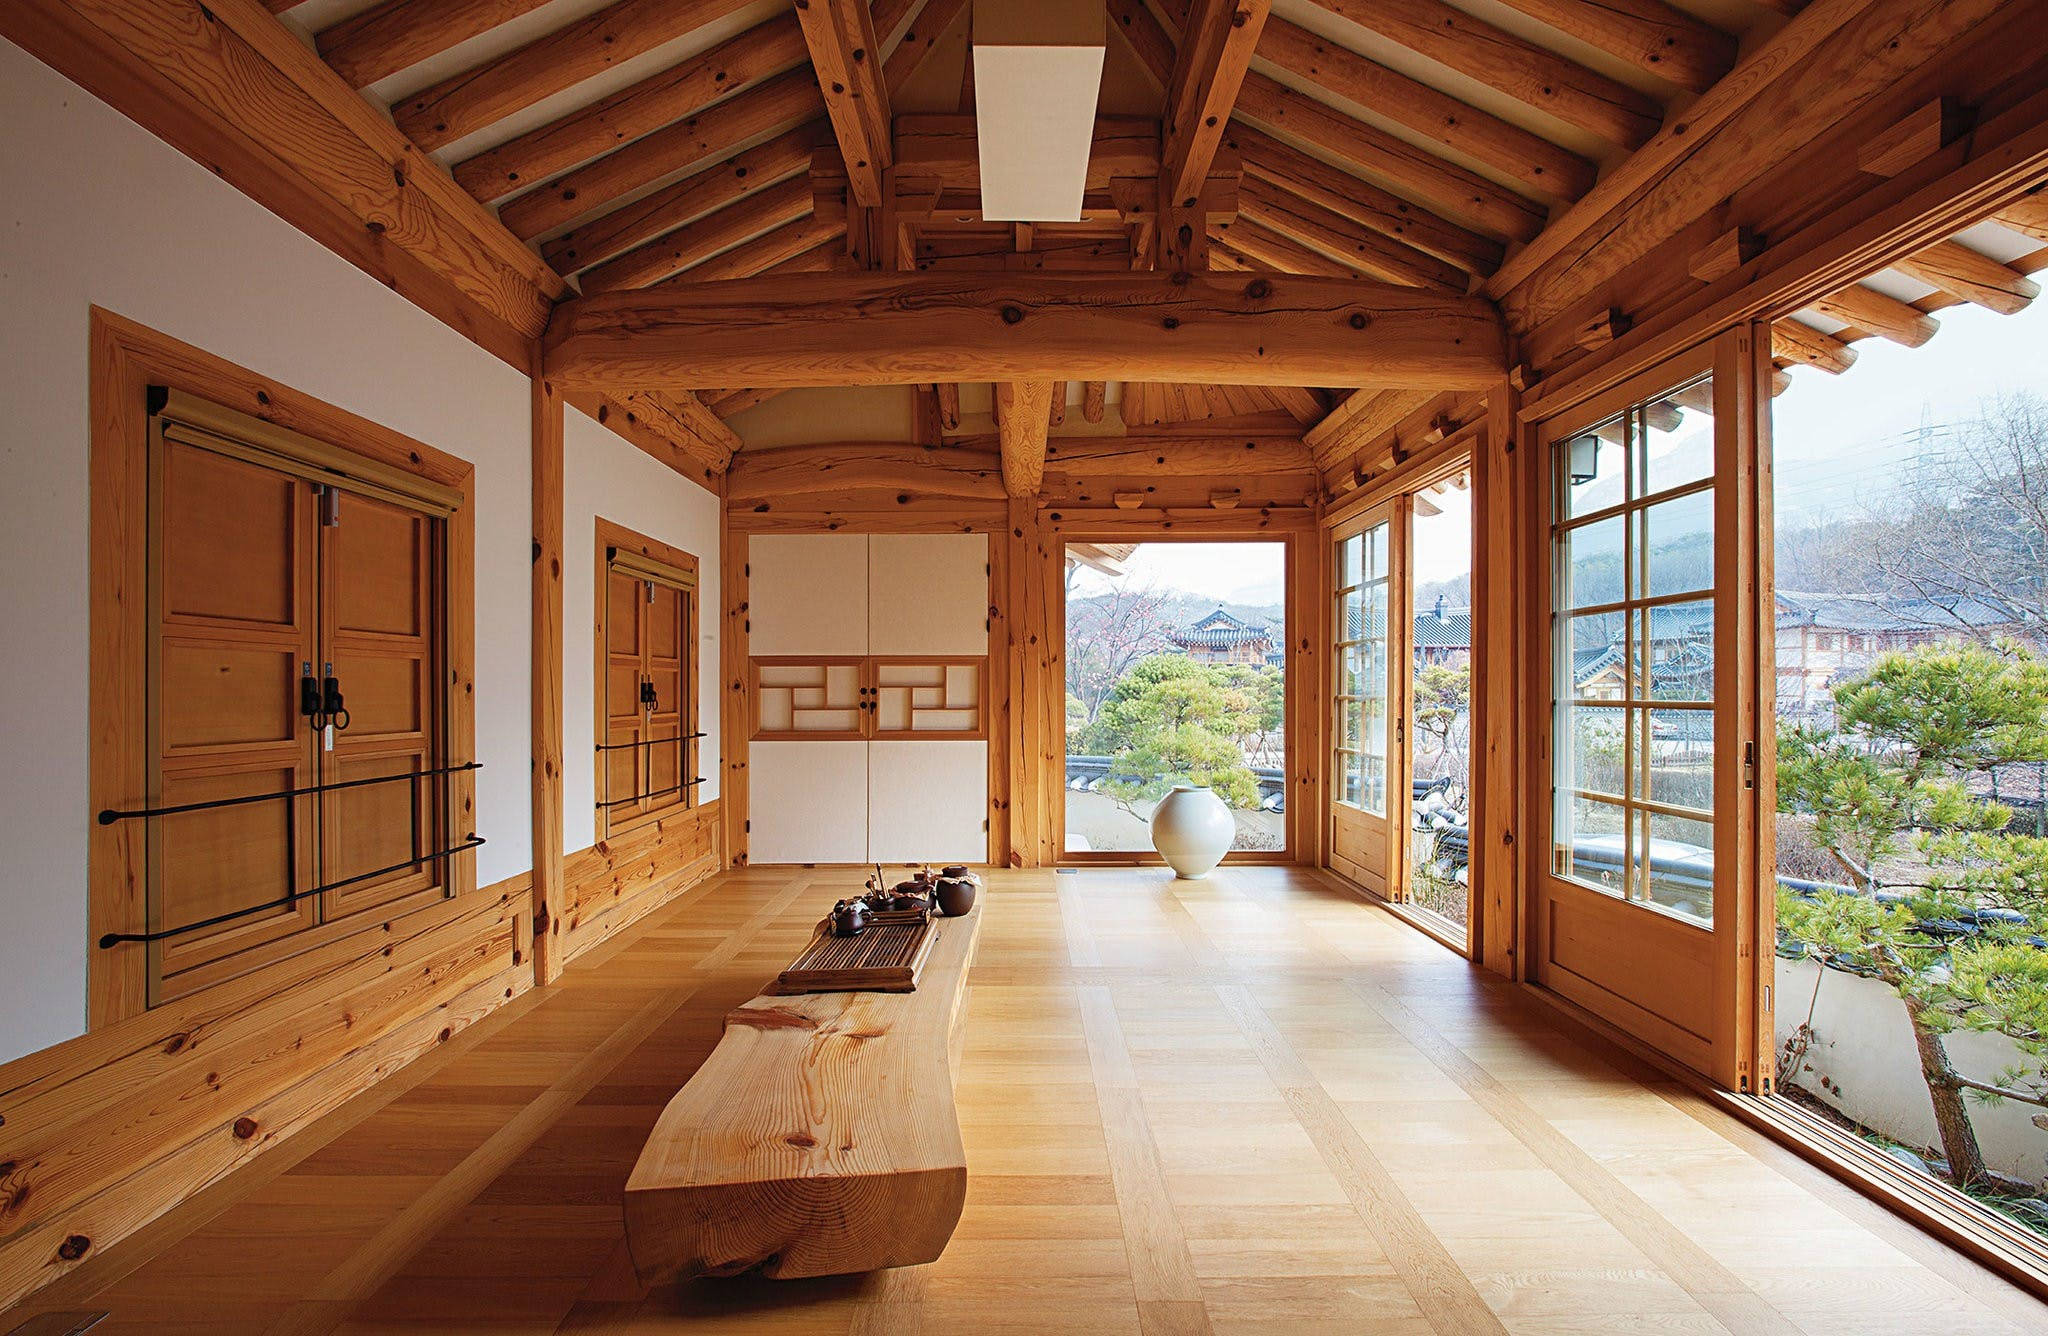 Seoul Housing Development Builds Traditional Hanok Designs For A Slower Lifestyle News Archinect